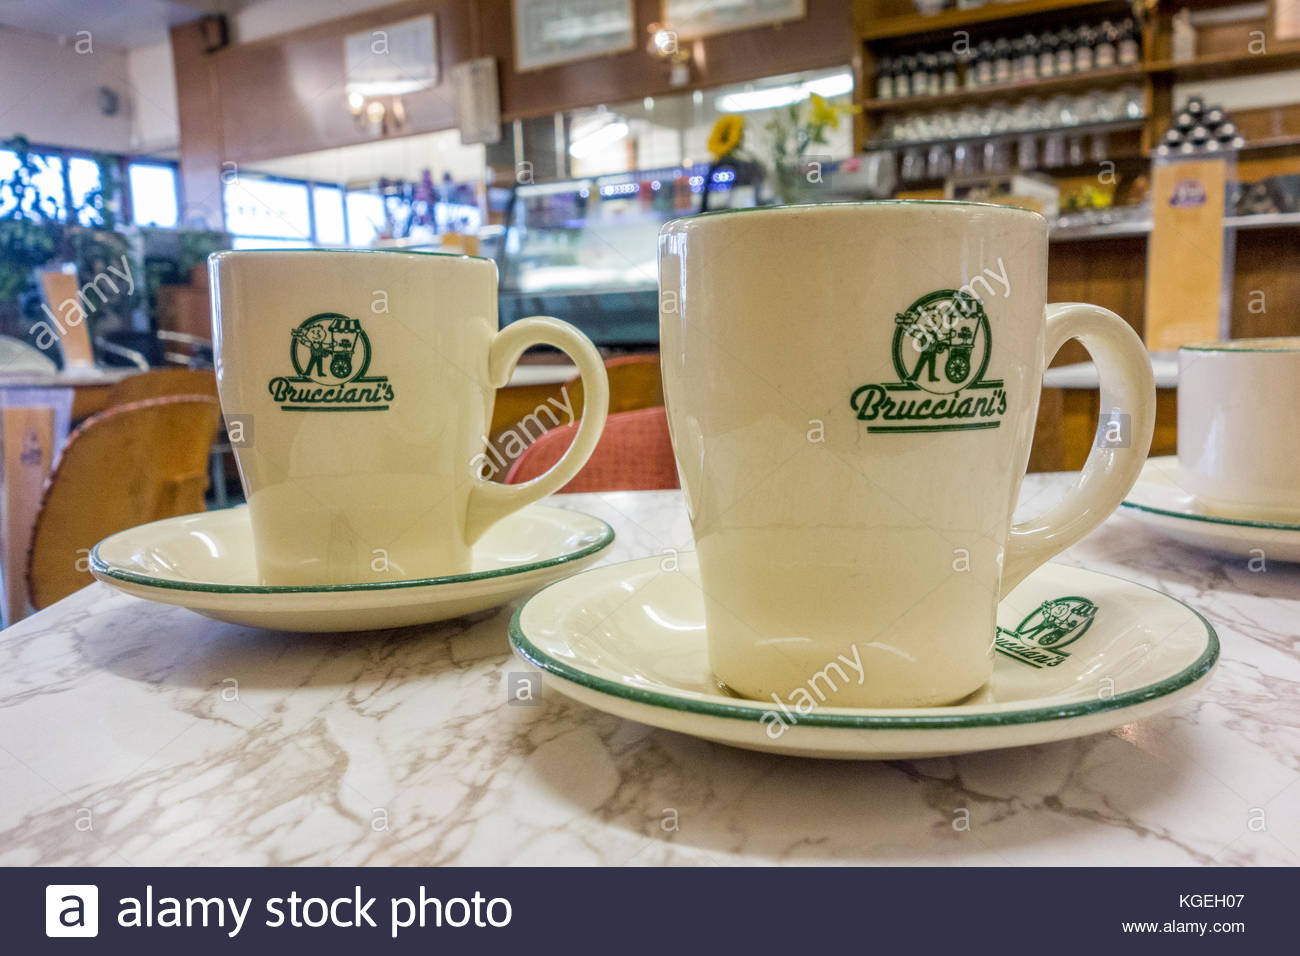 Coffee Mugs On A Formica Table In Brucciani S Cafe In Morecambe A Stock Photo Alamy